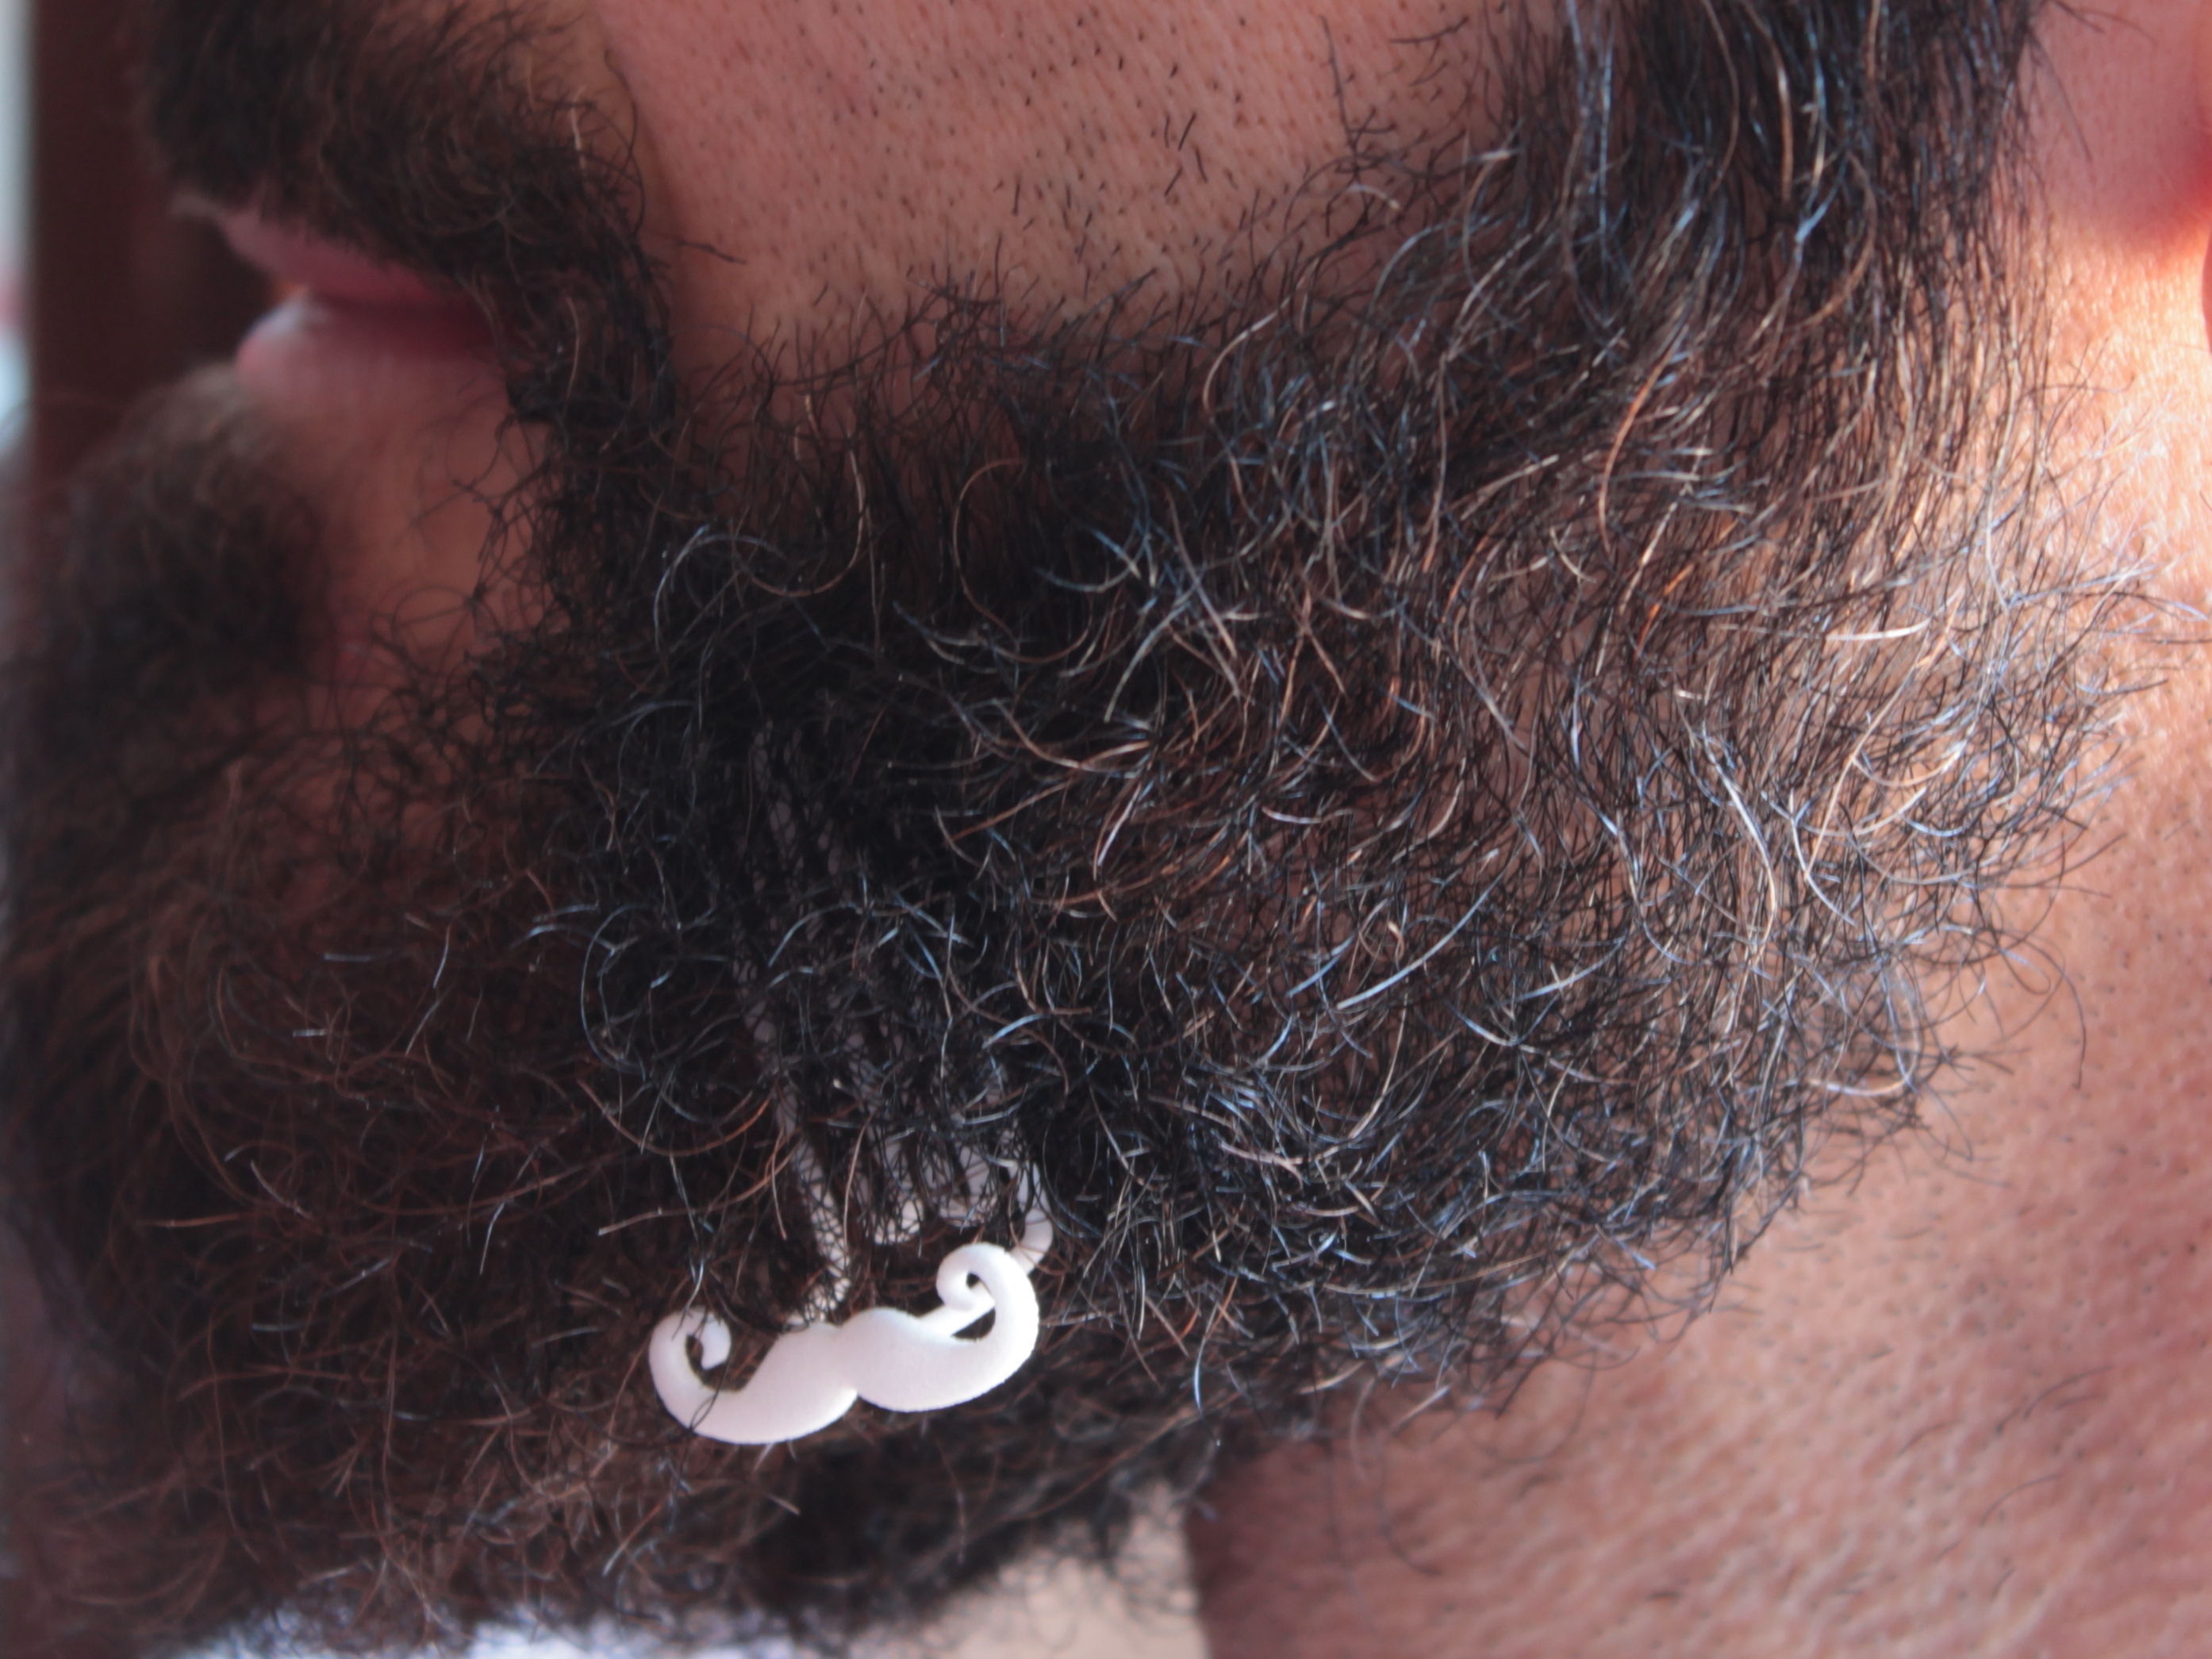 Mustache for beard - lateral wearing